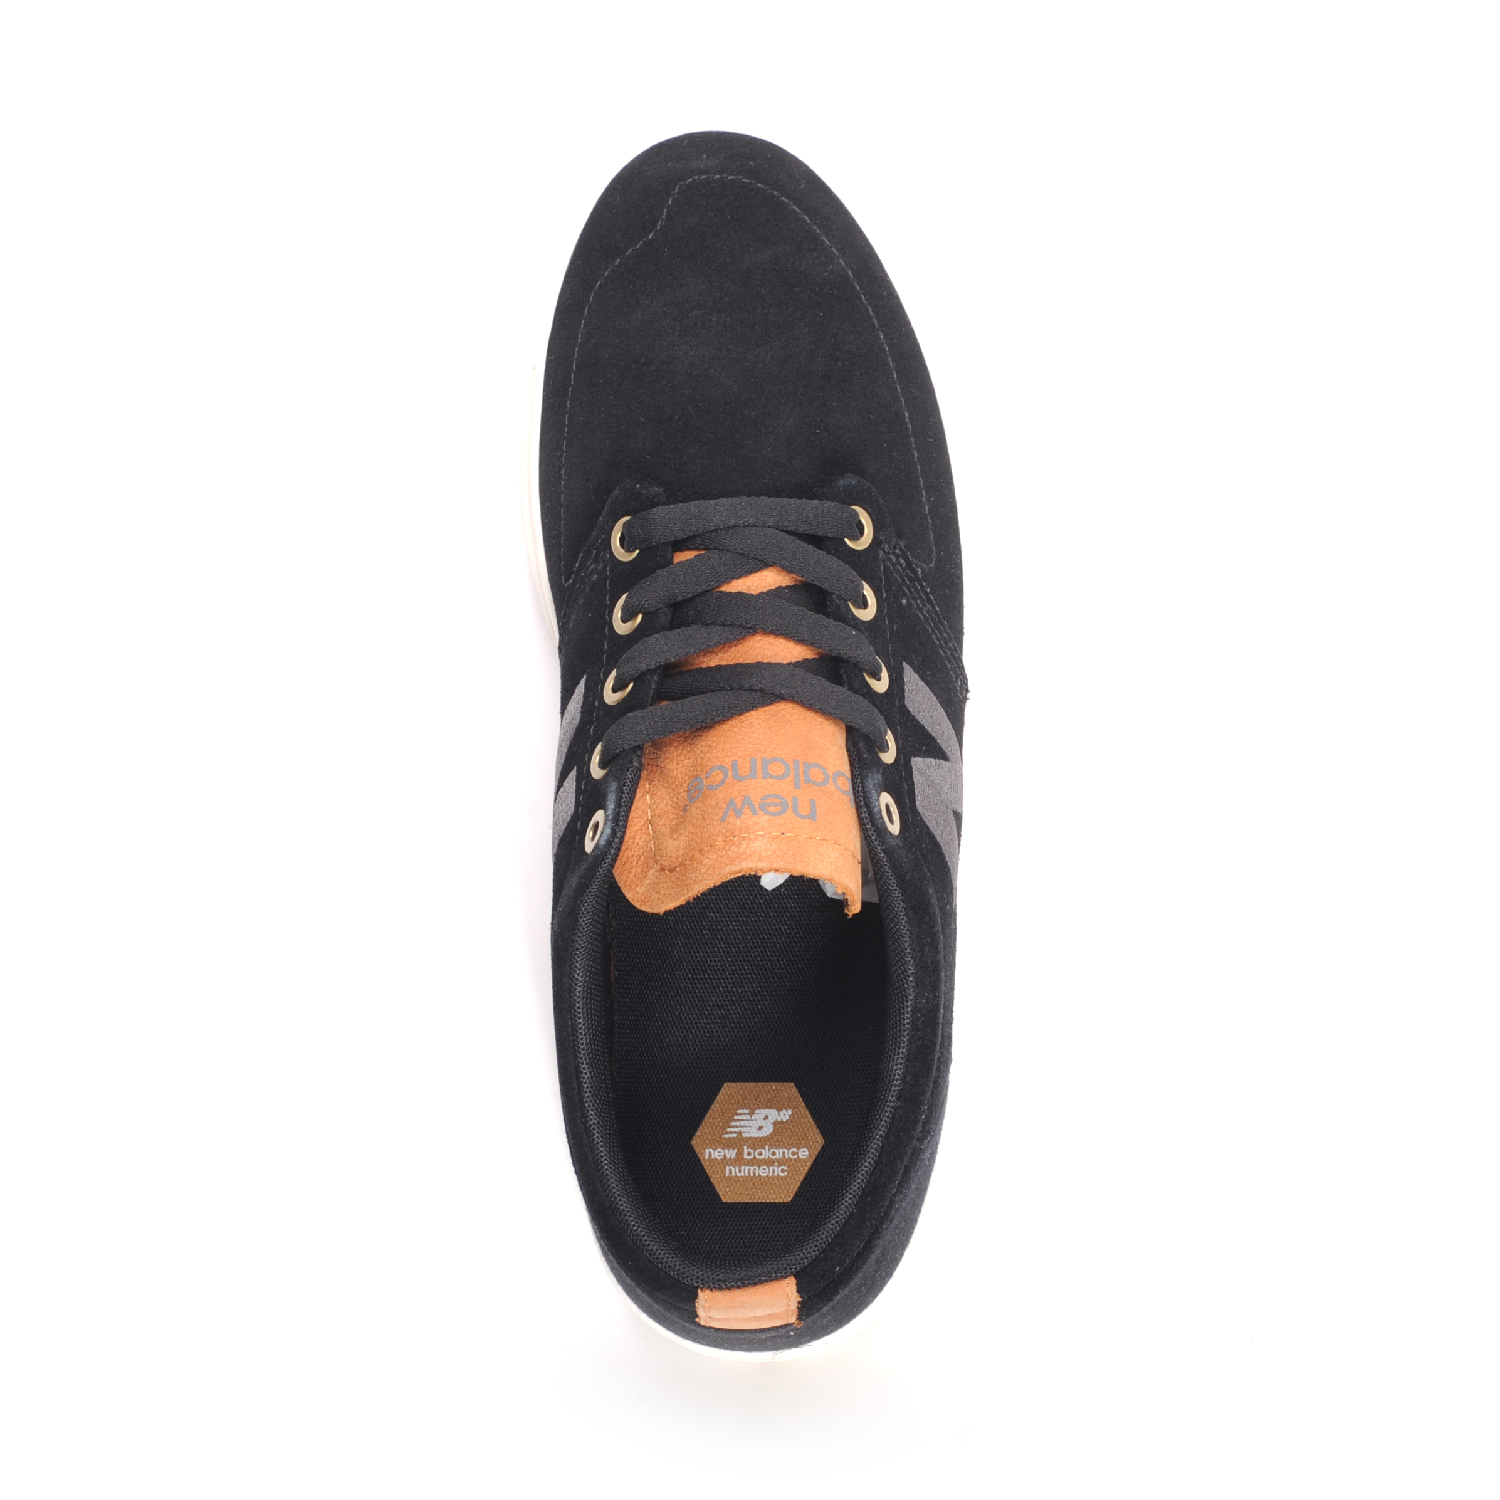 Details about New Balance Numeric 345 (BlackBrown) Men's Skate Shoes